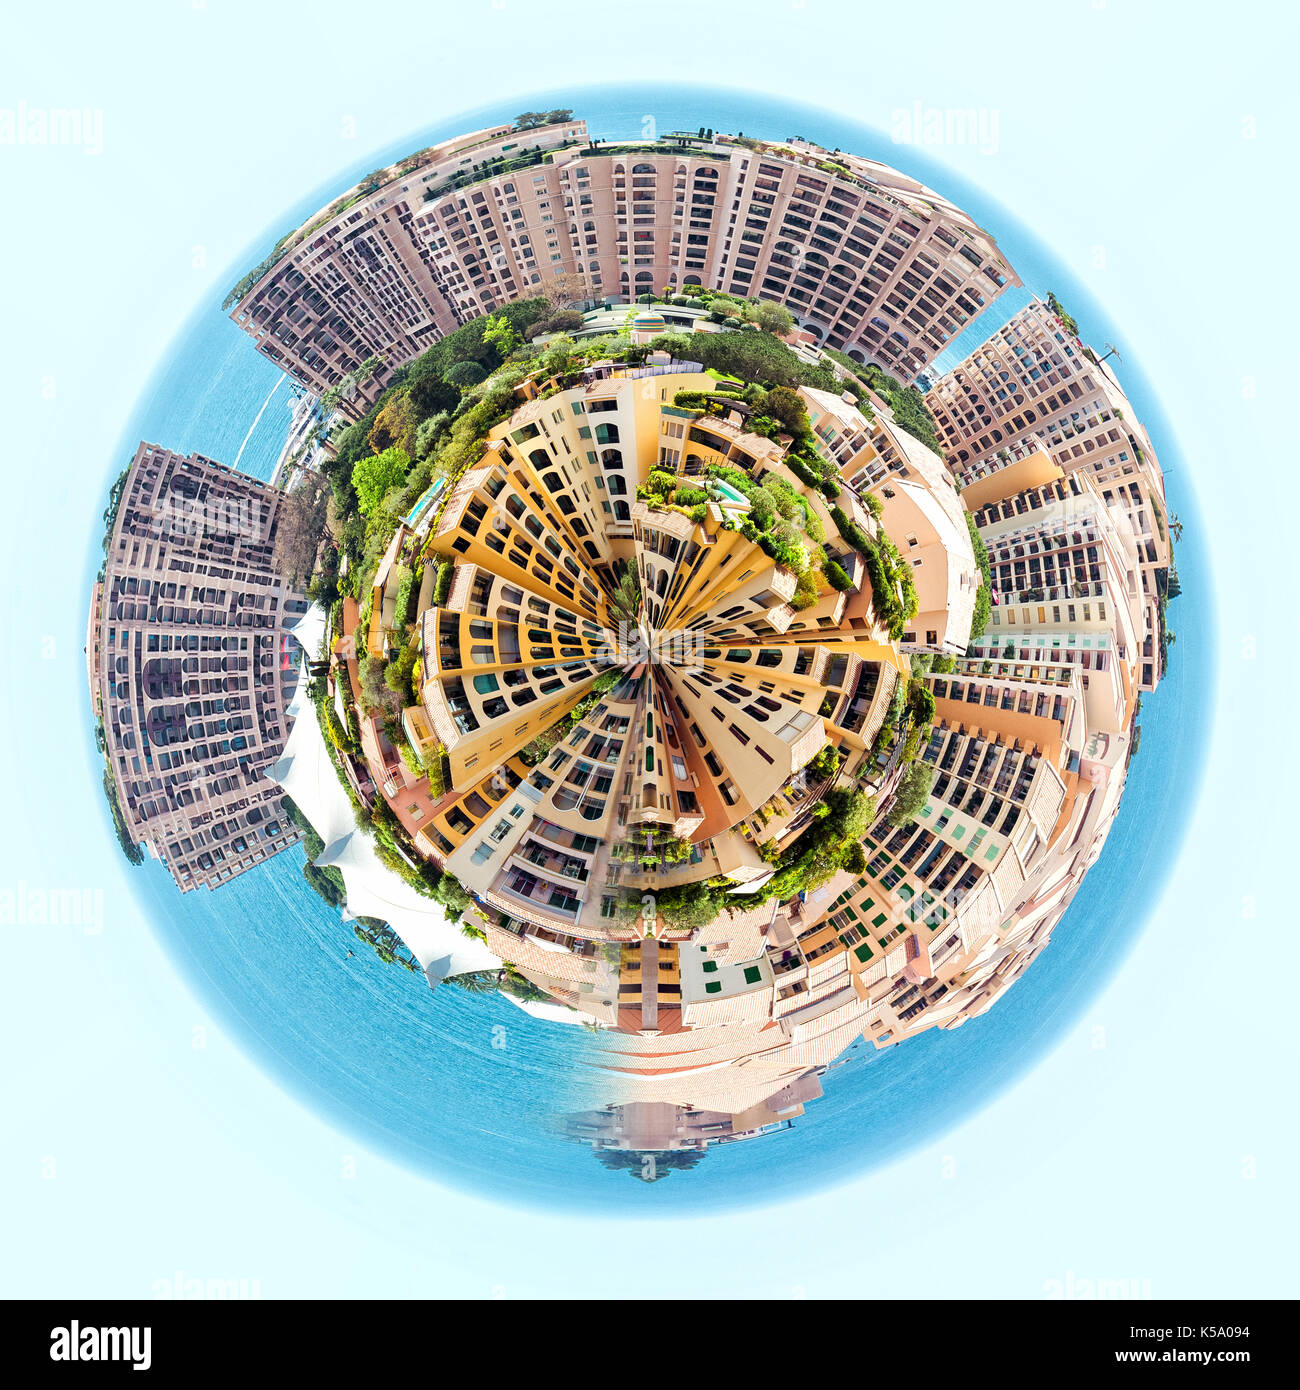 Little planet 360 degree sphere. Panorama of Fontvieille. Principality of Monaco - Stock Image